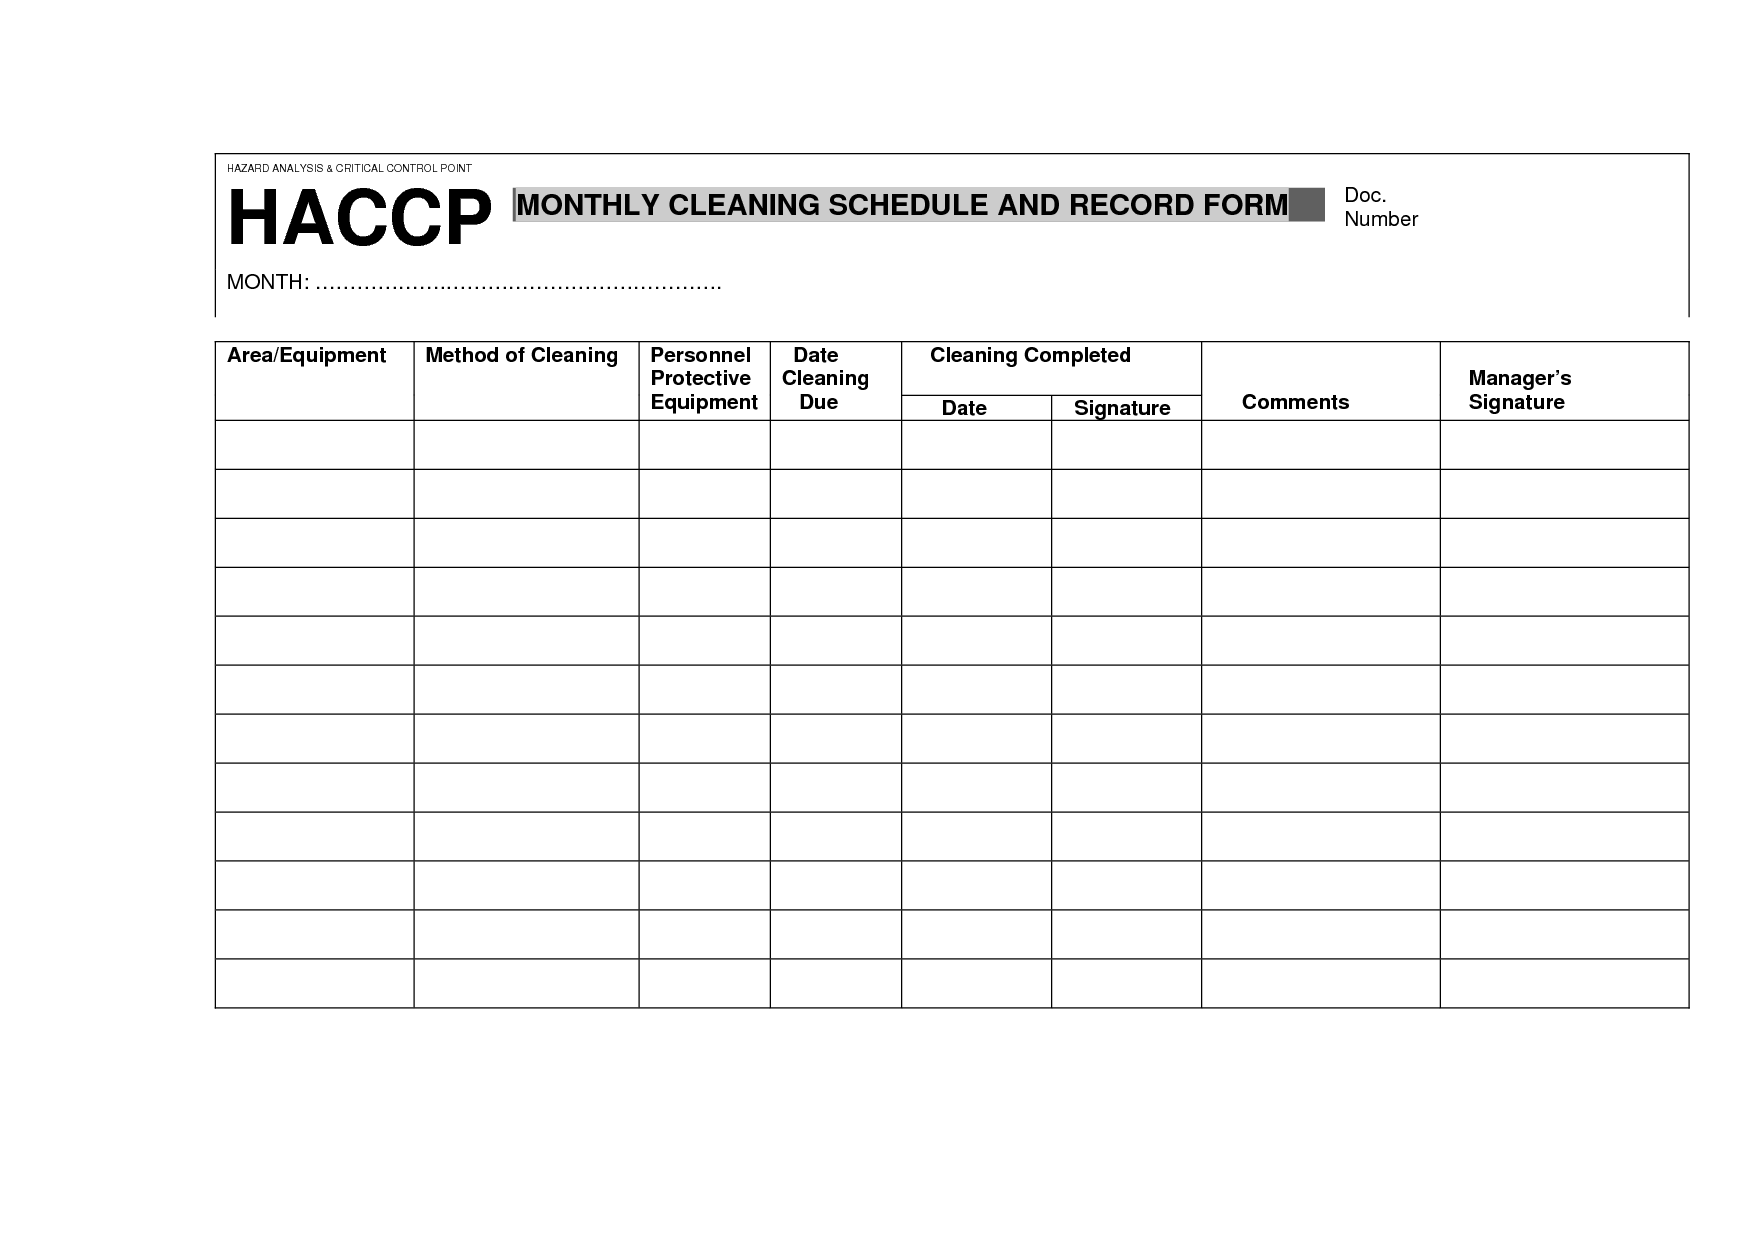 Haccp Cleaning Schedule And Record Form In